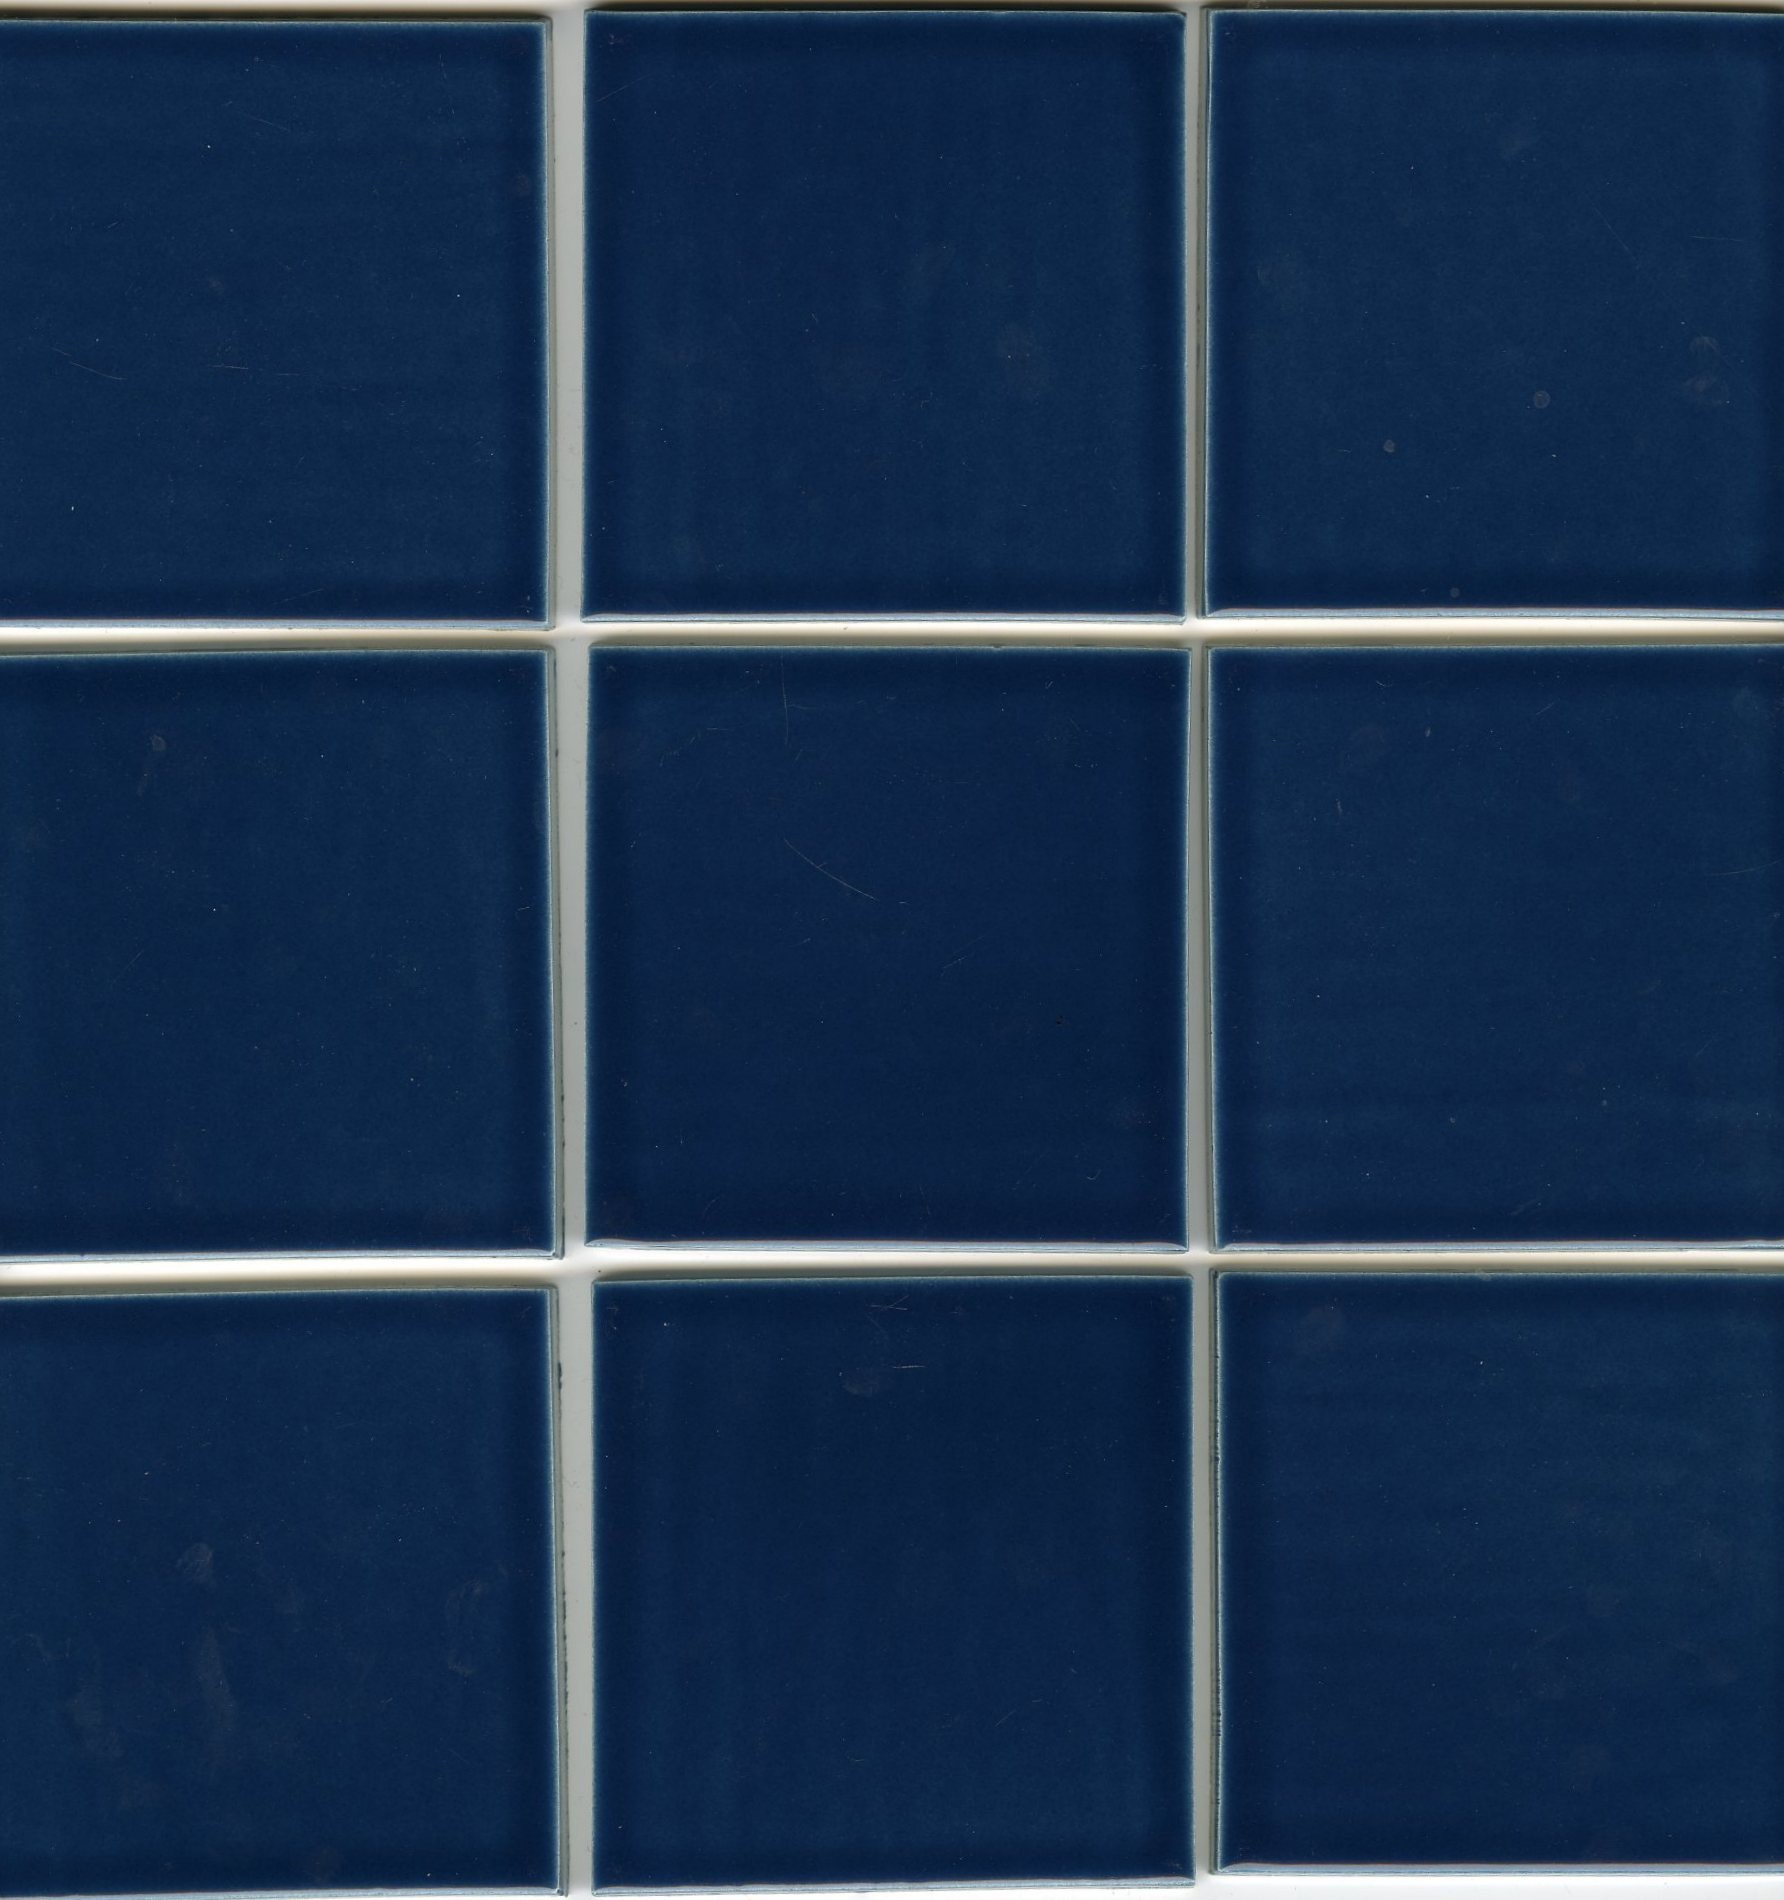 4x4 Ceramic Tile >> 25 Cool Pictures Of 4x4 Ceramic Bathroom Wall Tile 2019